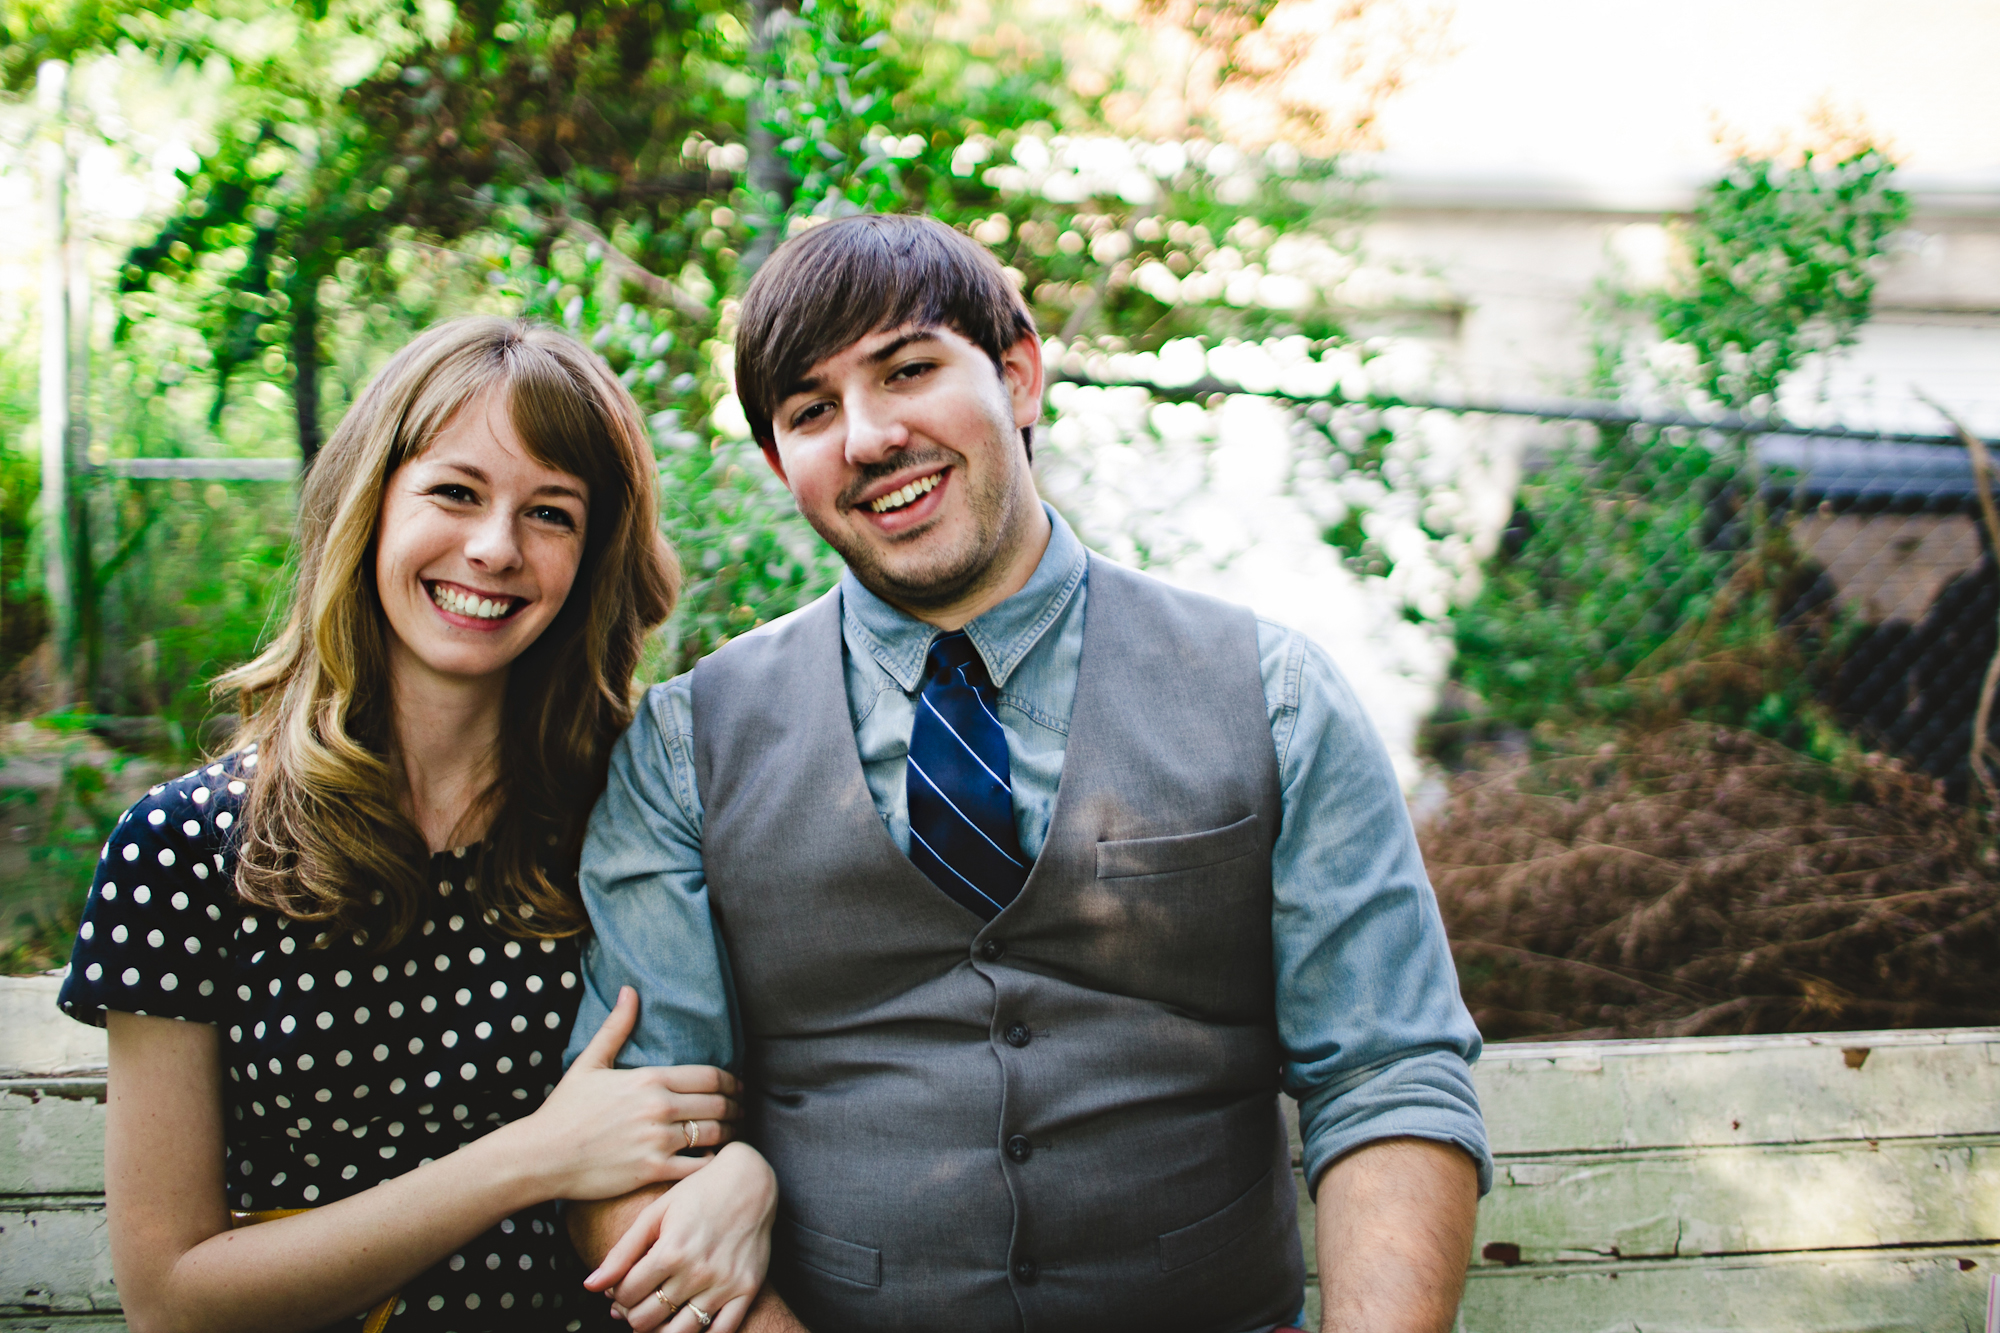 EmilyChidesterPhotography_Jena&Josh_Charlotte_NorthDavidson_Engagement-49